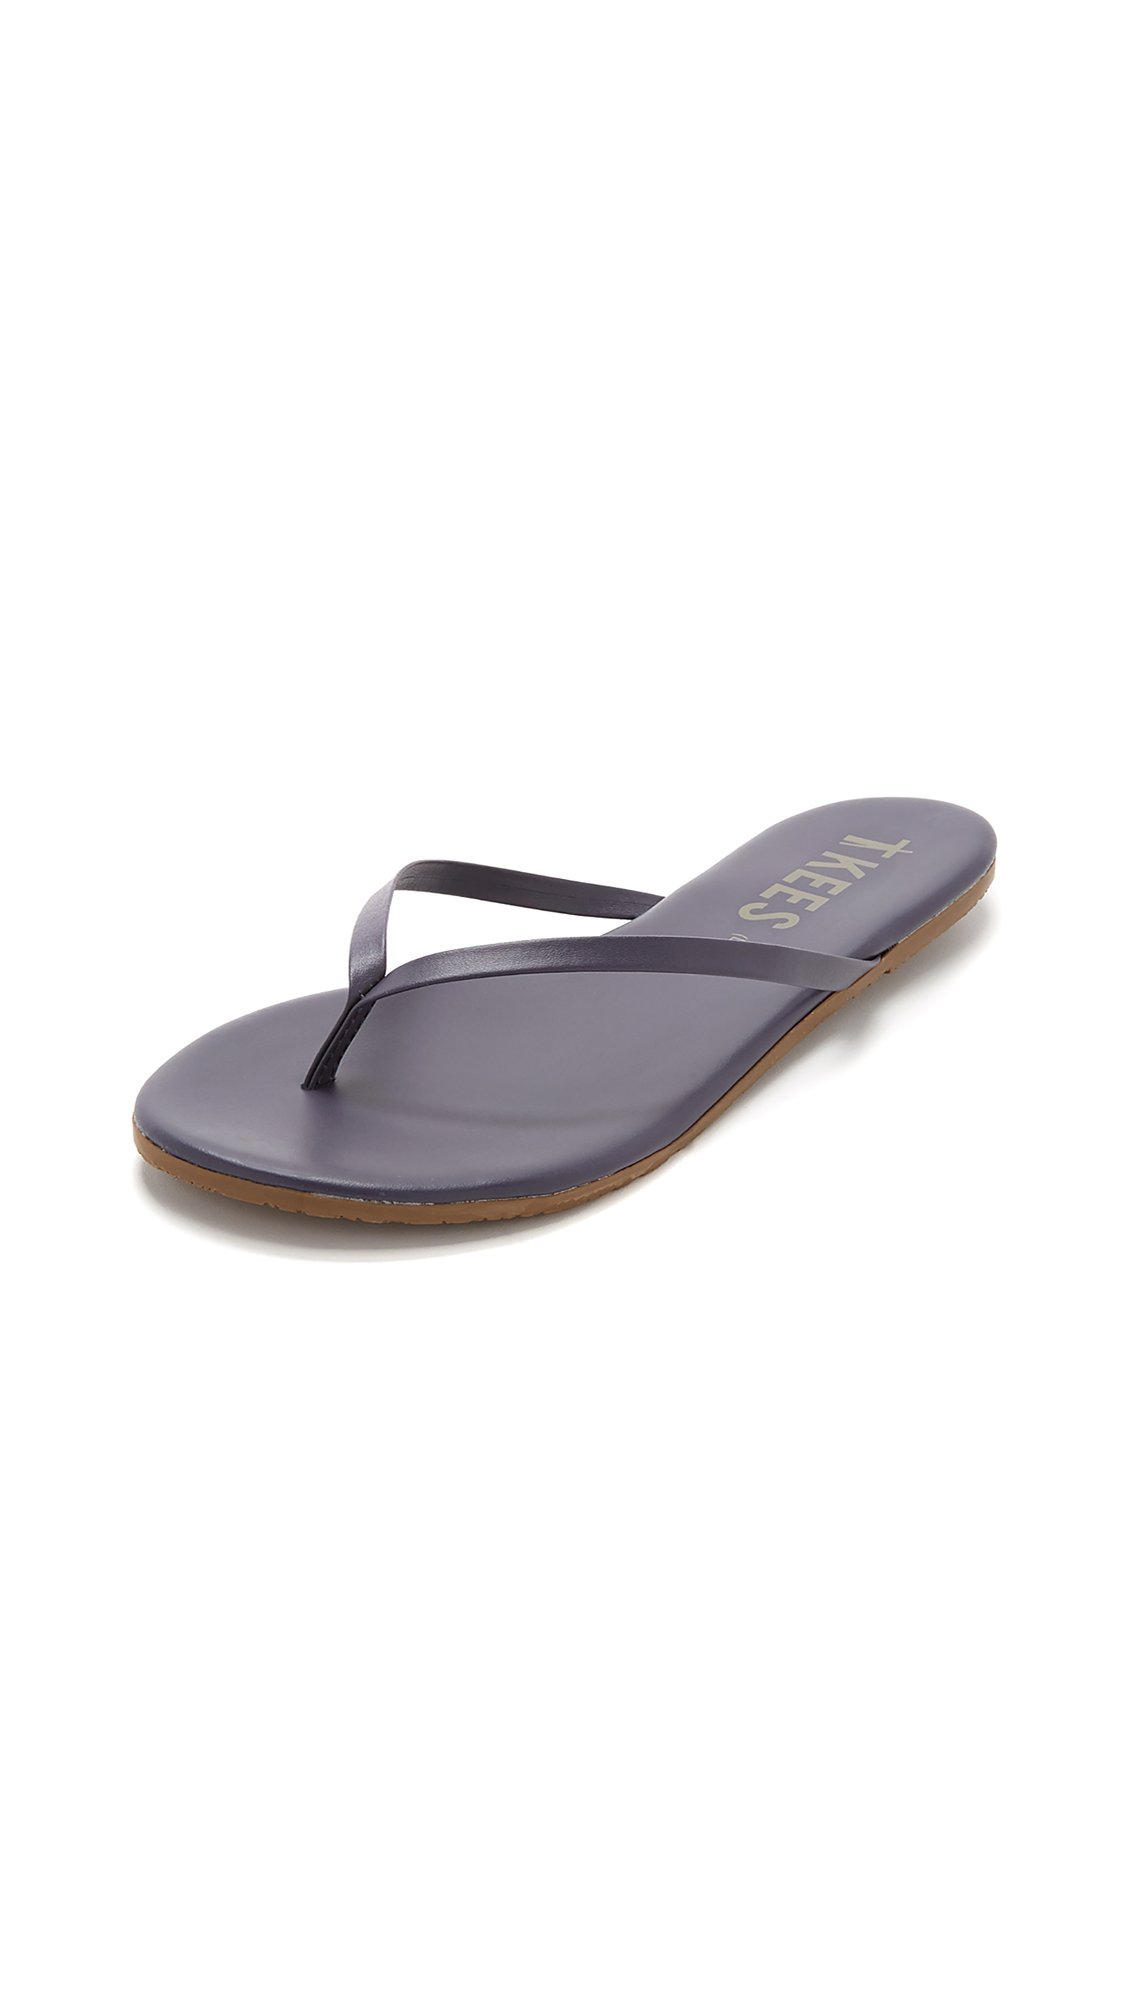 Photo of TKEES Liners Flip Flops online shoes sales